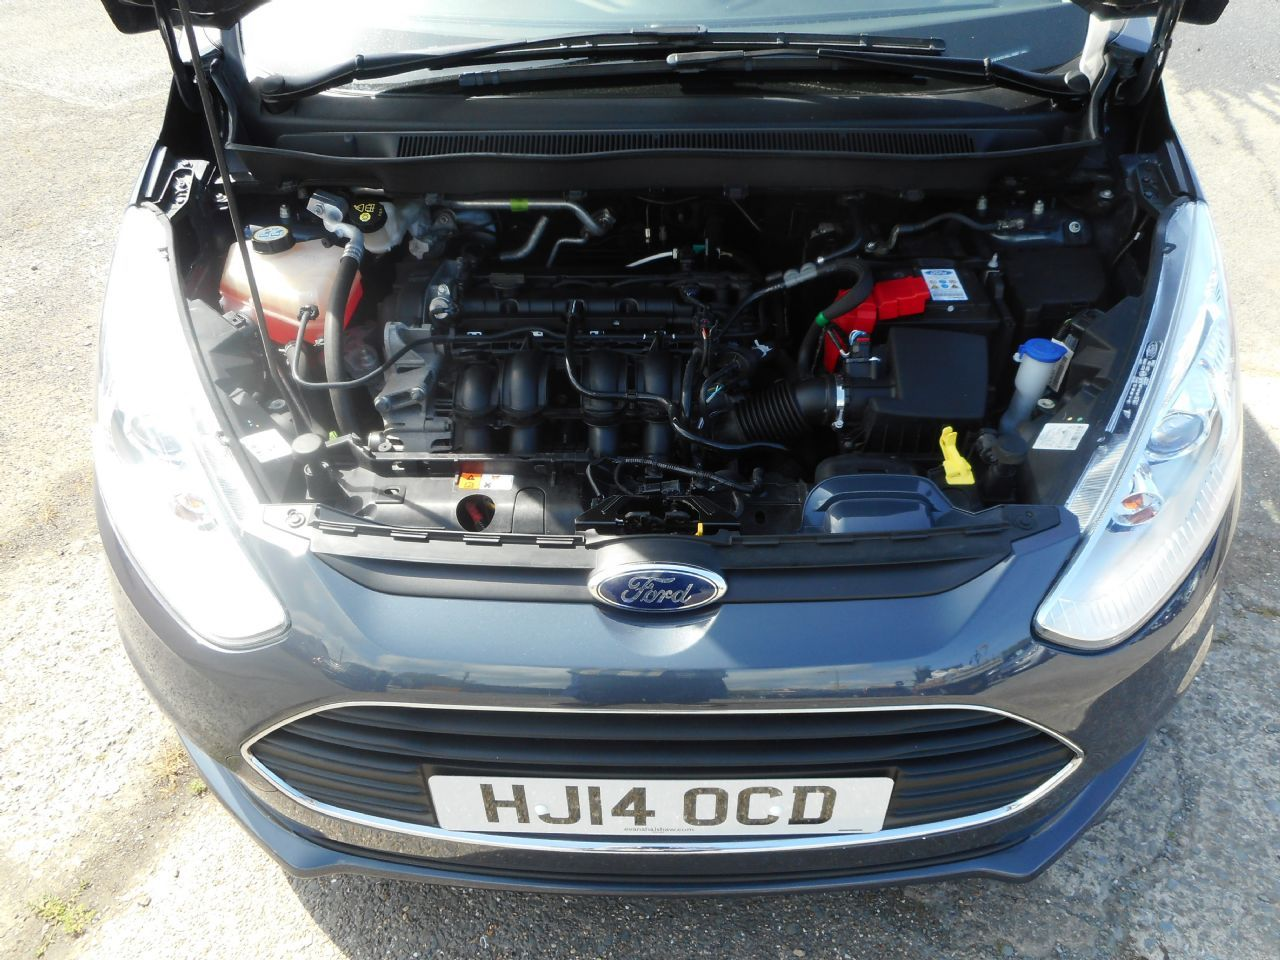 FORD B-MAX 1.6 105PS PowerShift Zetec (2014) - Picture 15